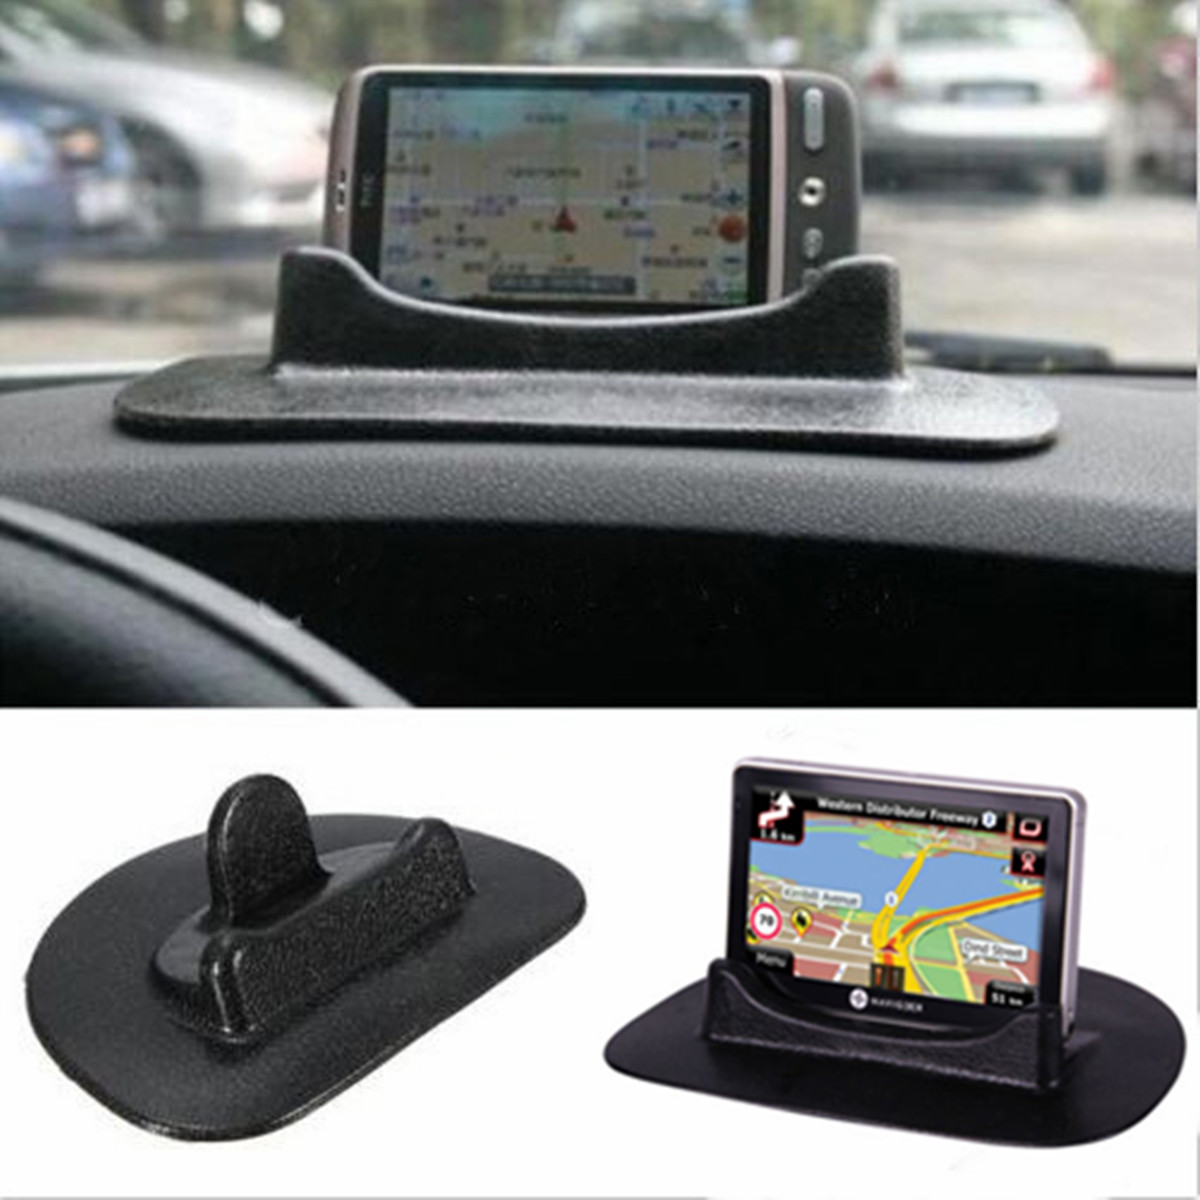 Car universal dashboard anti slip pad holder mount for mobile phone tablet gps ebay - Notepad holder for car ...